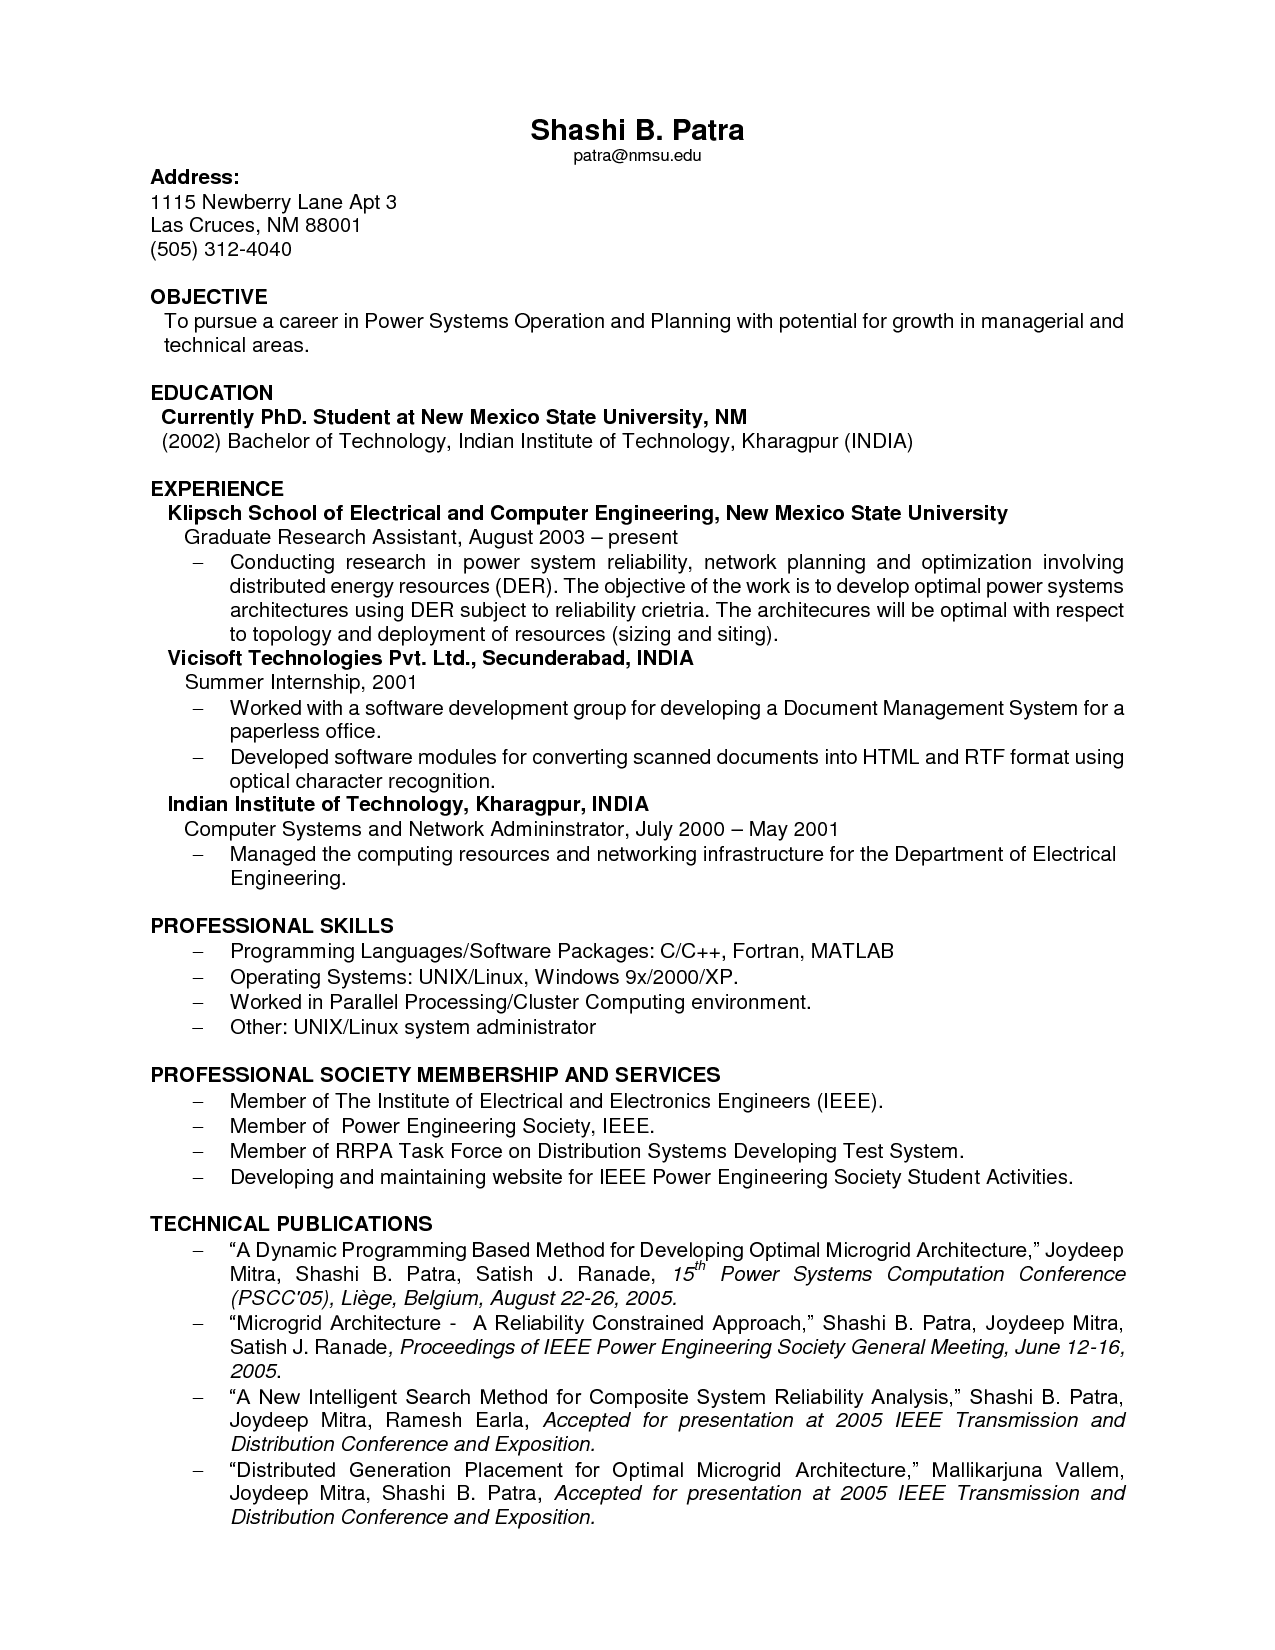 Free Resume Templates No Experience Experience Freeresumetemplates Resume Template Job Resume Examples Basic Resume Examples Professional Resume Examples